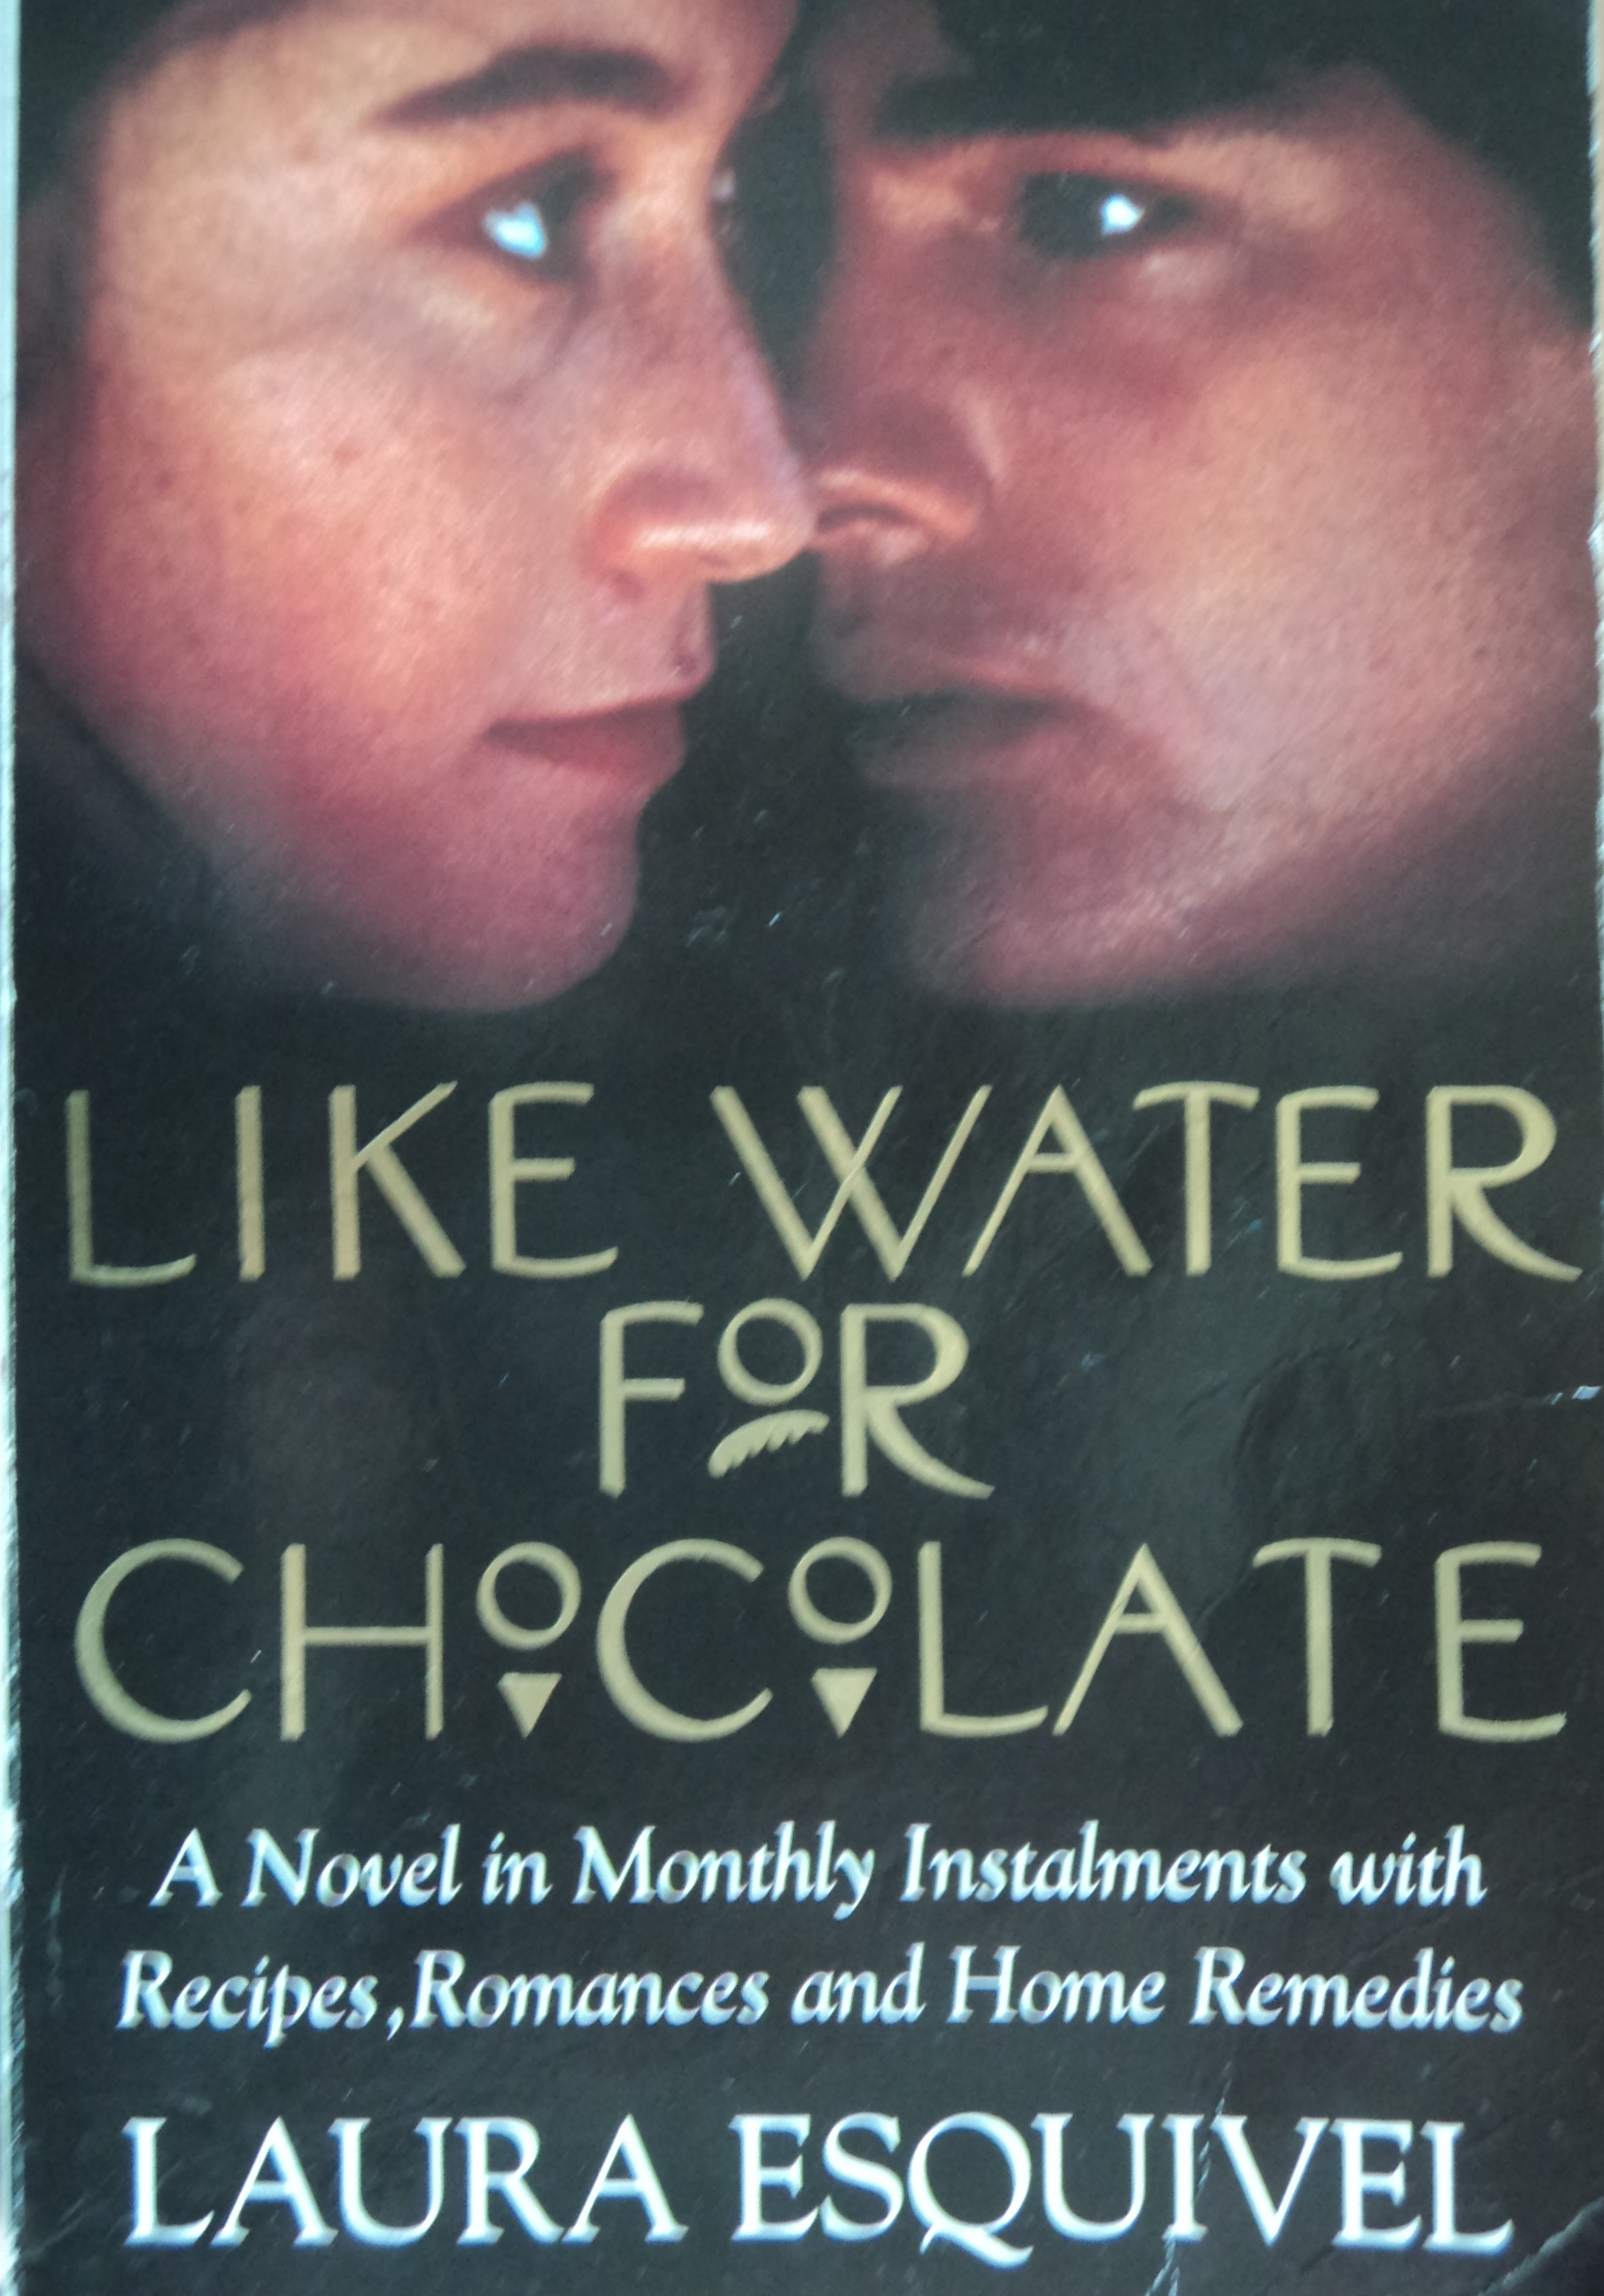 like water for chocolate Like water for chocolate is the fourth studio album by american hip hop rapper common, released march 28, 2000 on mca records it was a considerable critical and commercial breakthrough for common, receiving generally favorable reviews from major magazine publications and selling 70,000 copies in its first week.